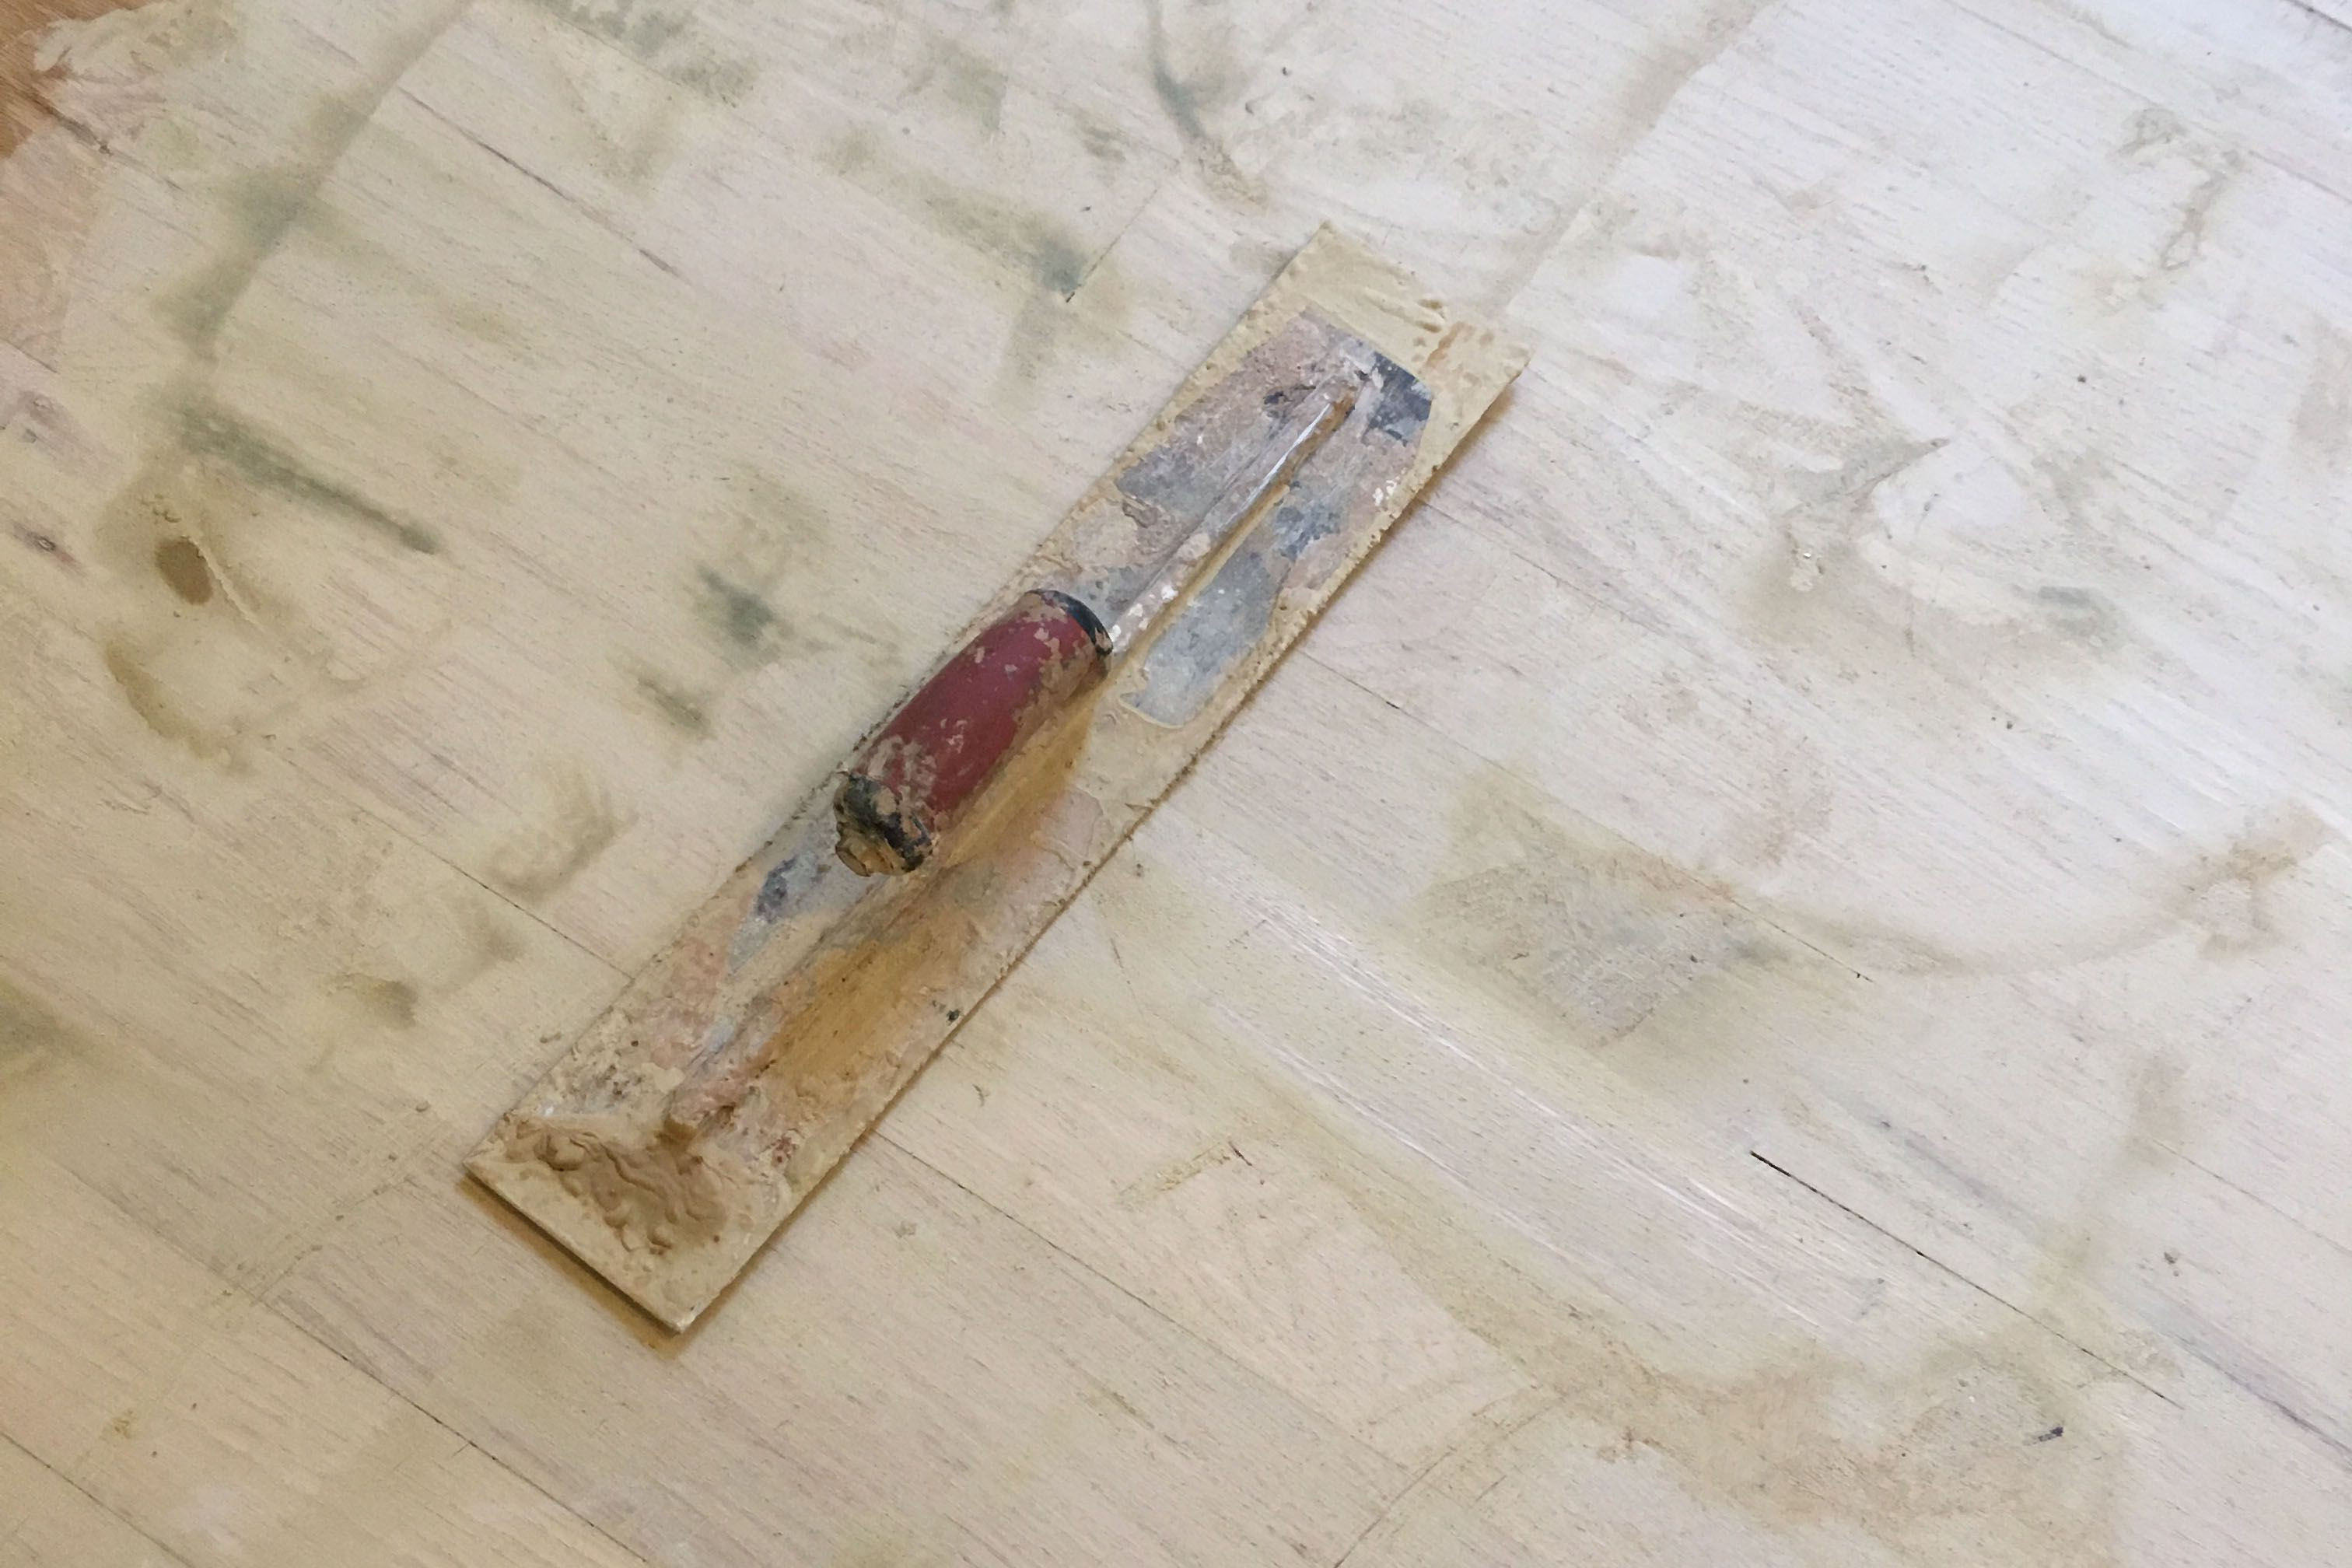 re waxing hardwood floors of 7 things to know before you refinish hardwood floors pertaining to trough hardwood floor manhattan avenue via smallspaces about com 579138783df78c173490f8a5